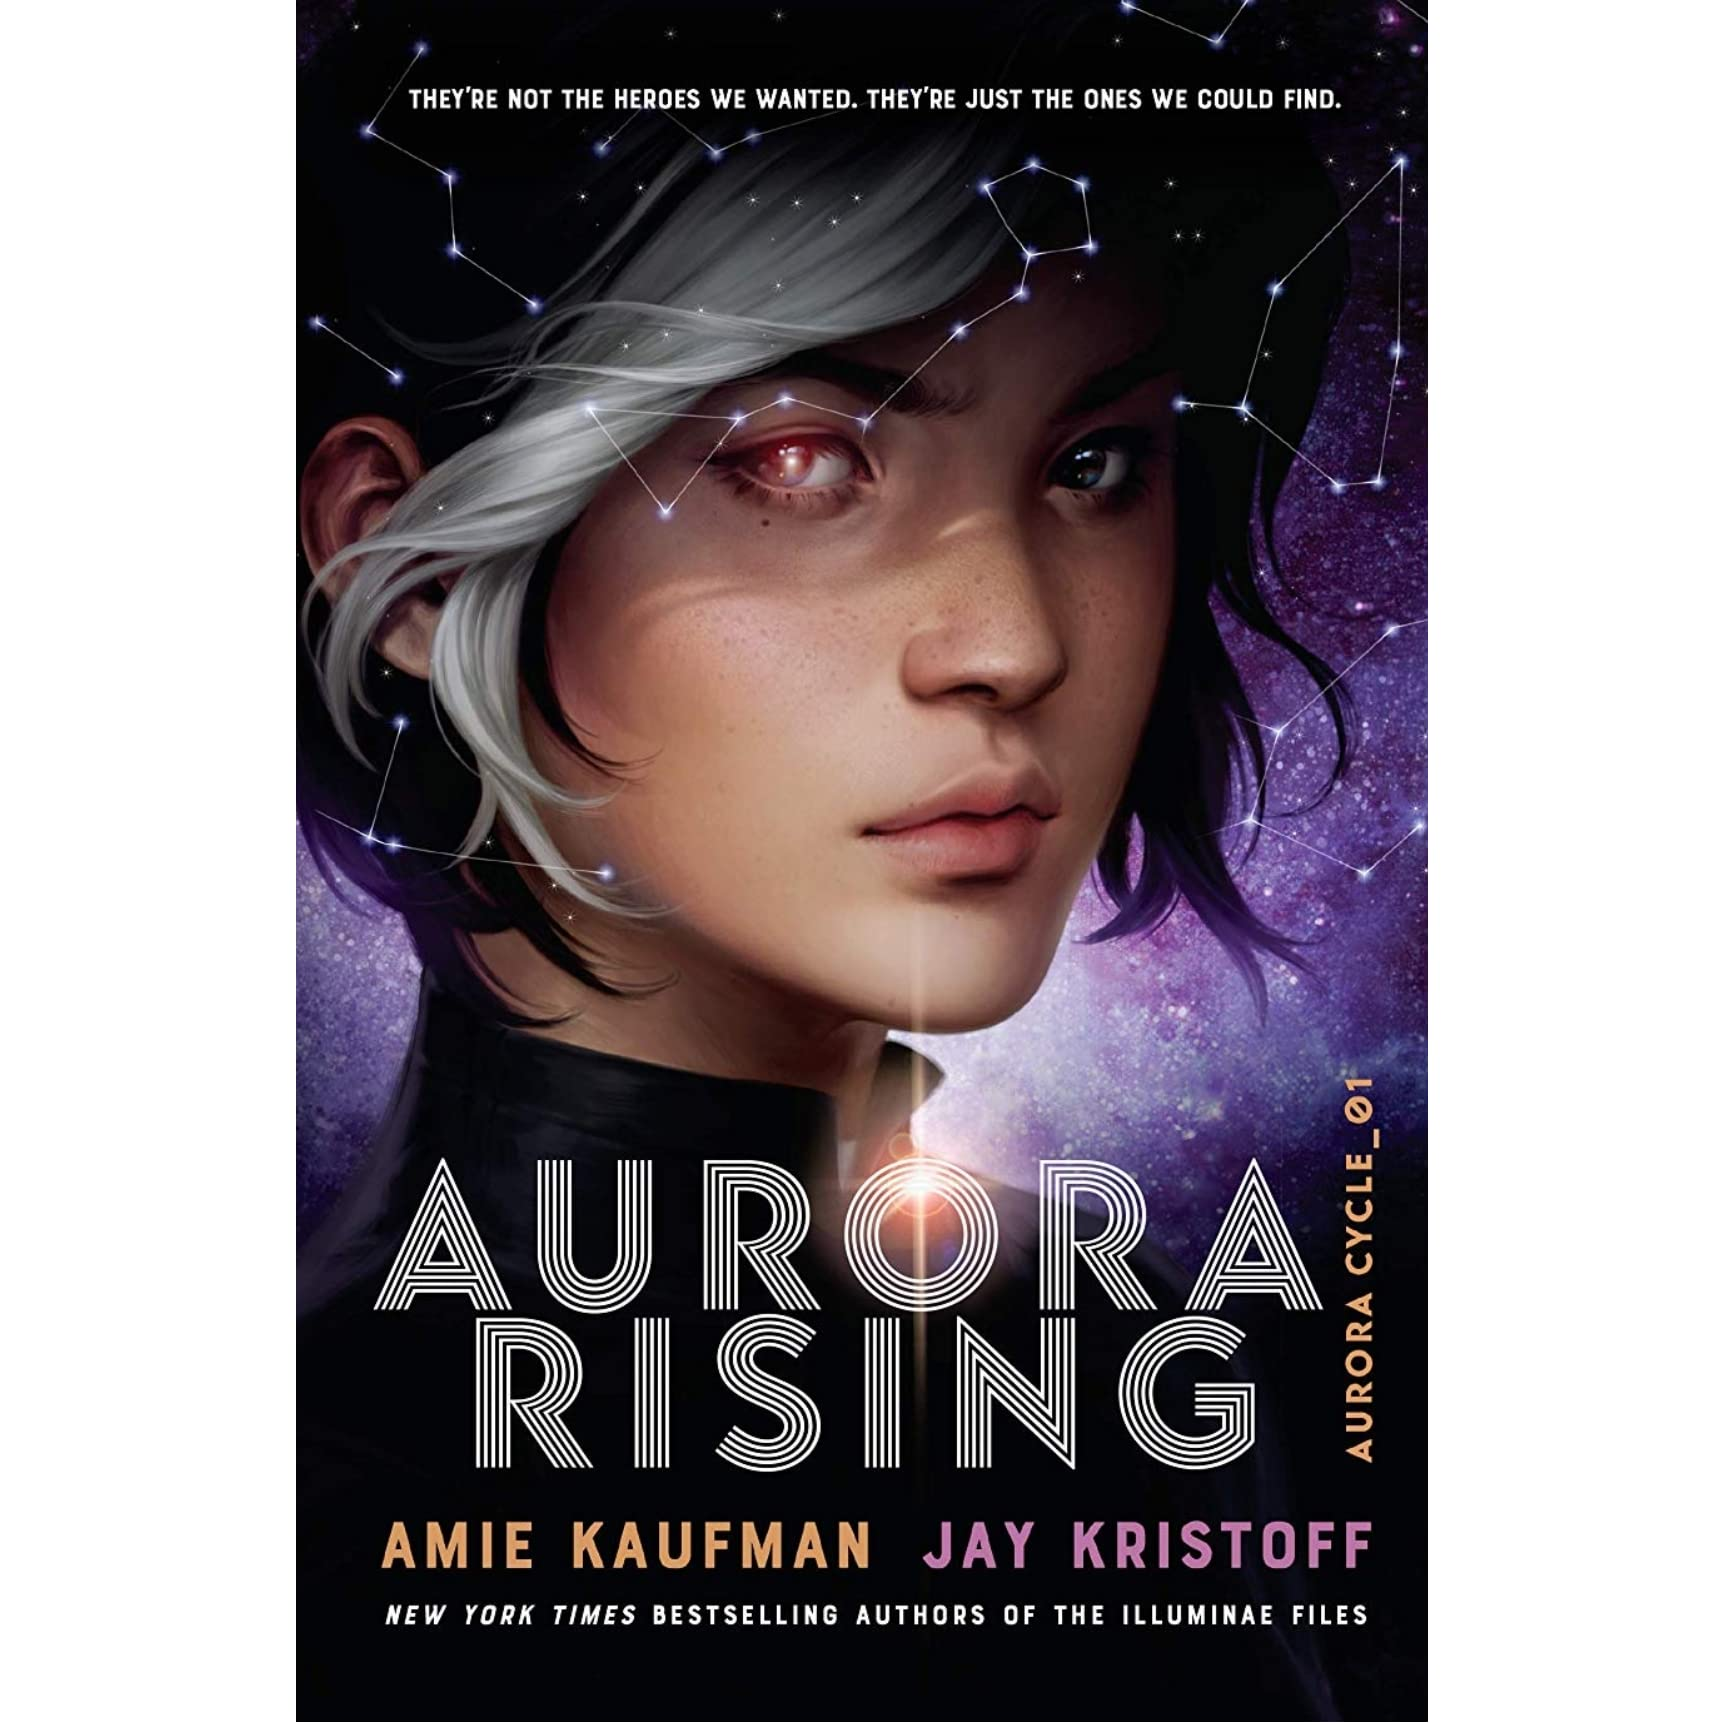 Aurora Rising (The Aurora Cycle, #1) by Amie Kaufman